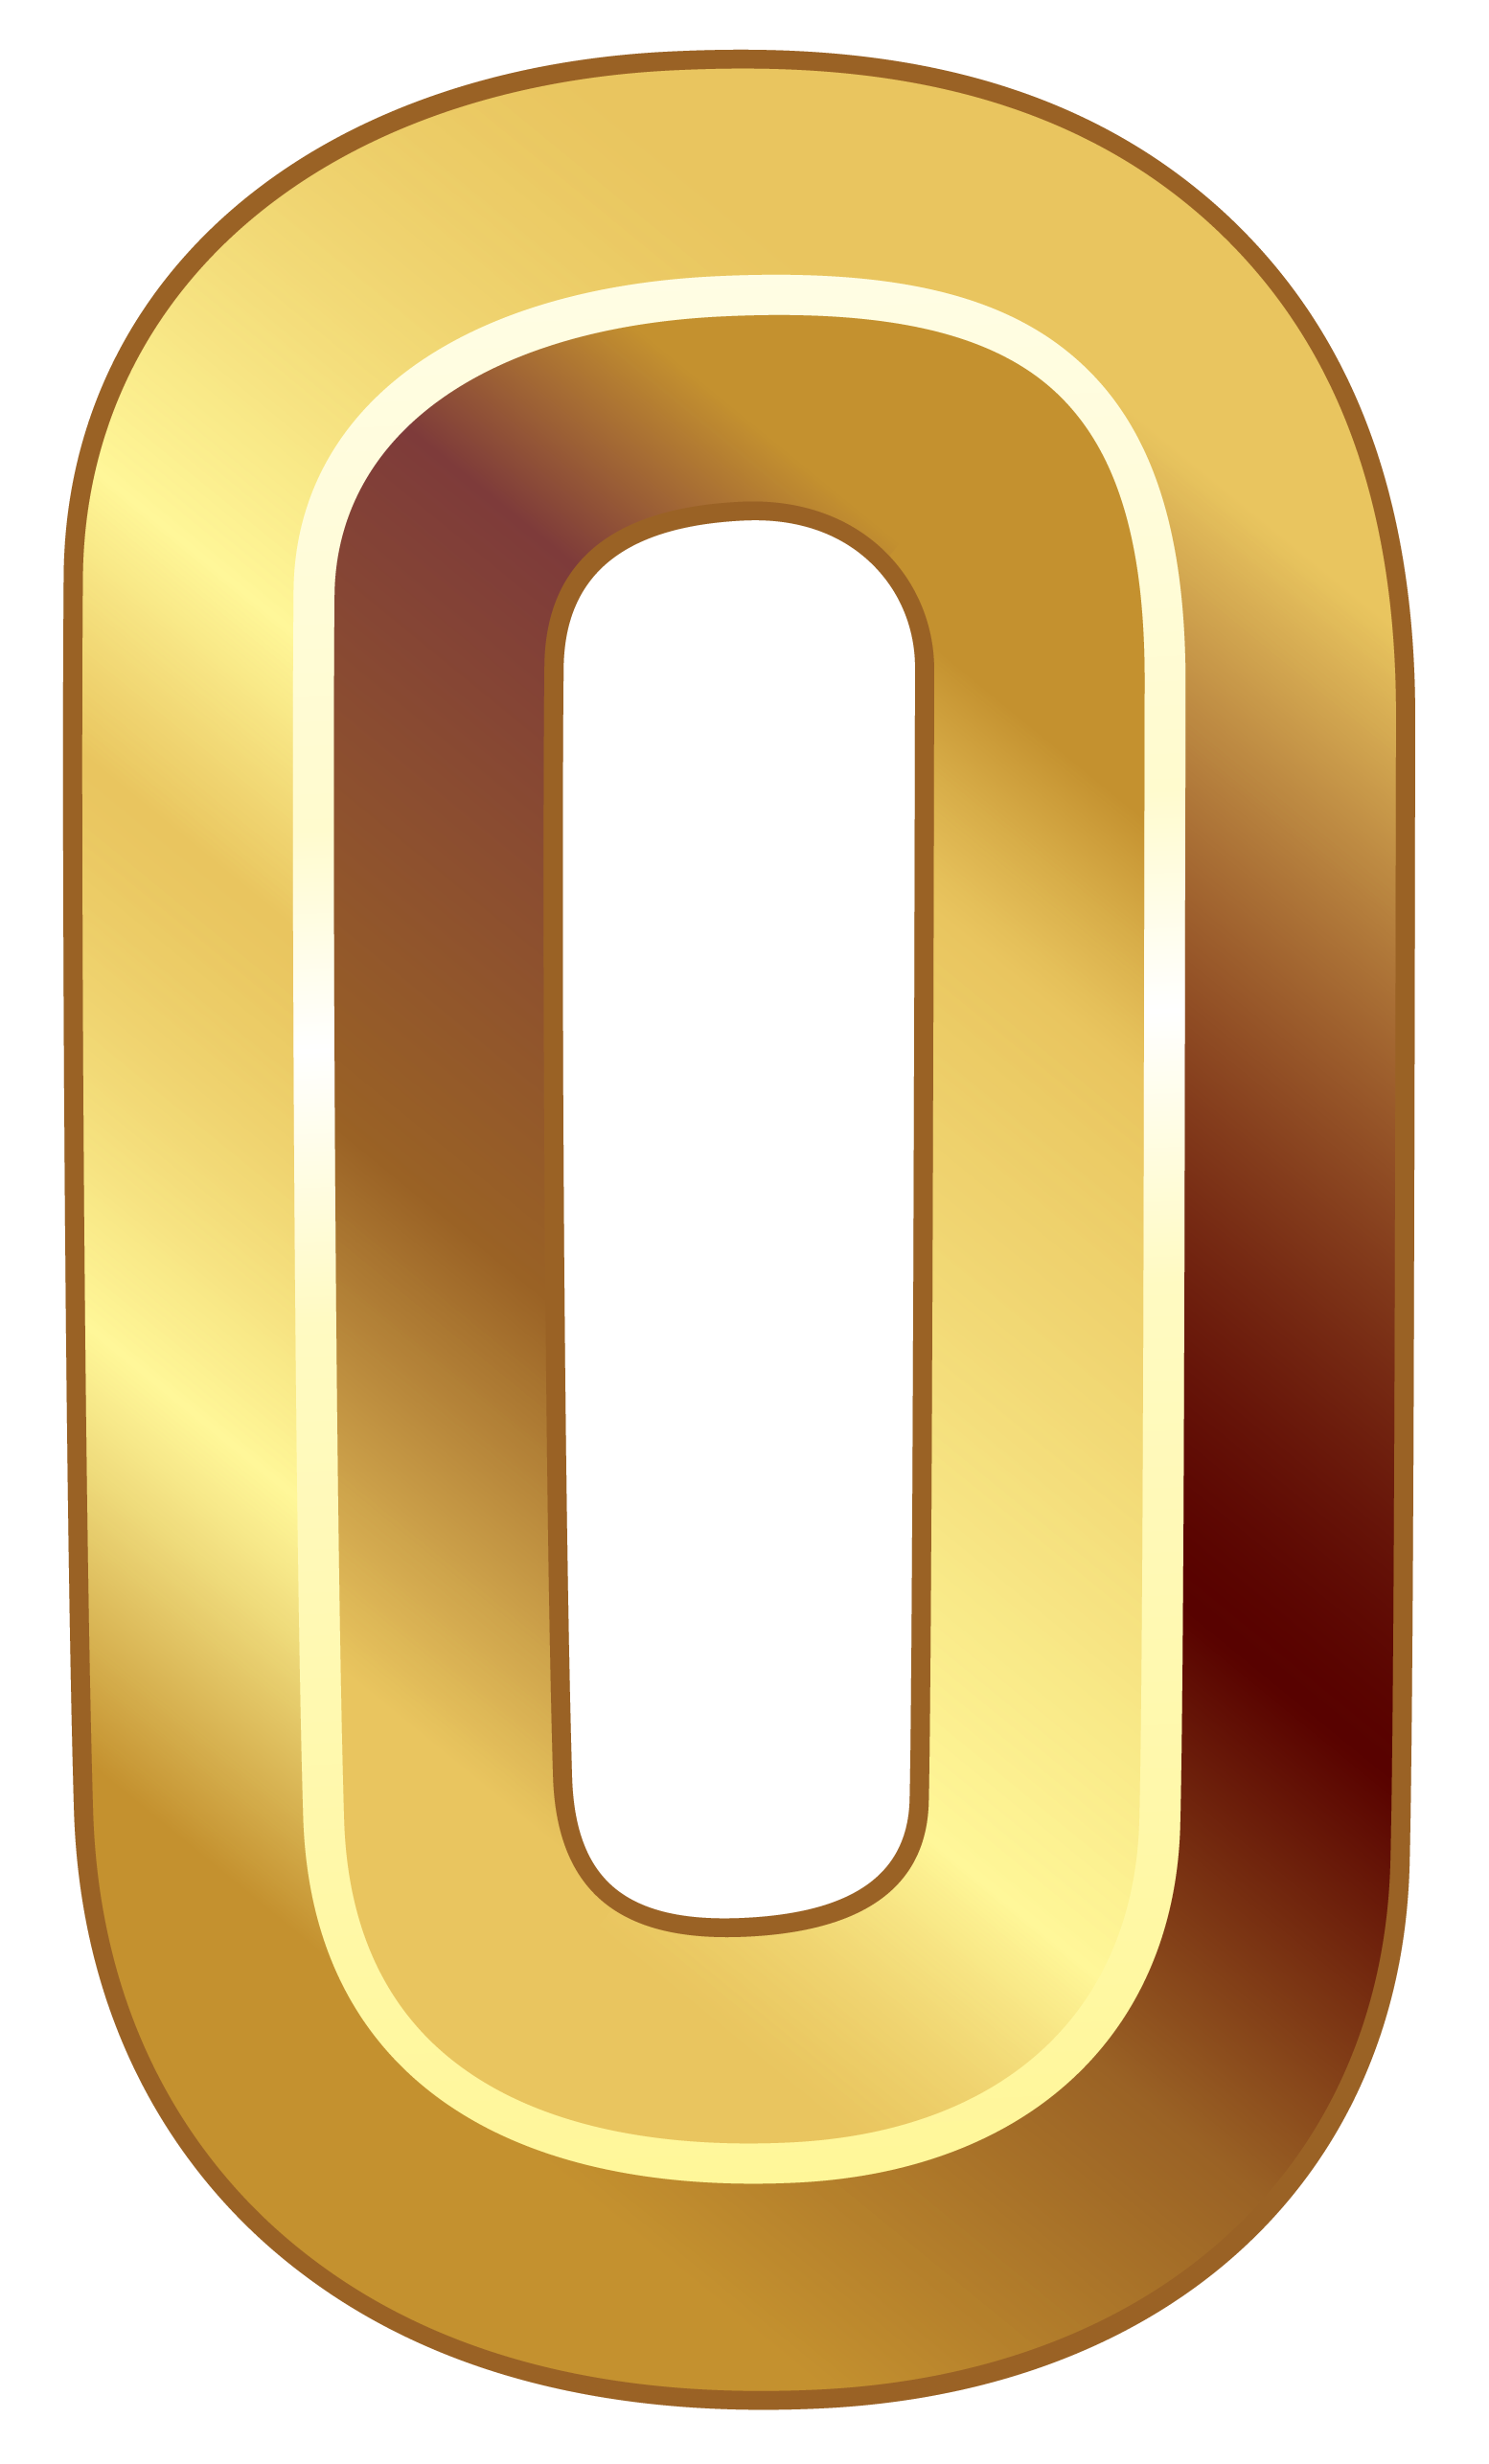 Gold numbers png. Number zero clipart image